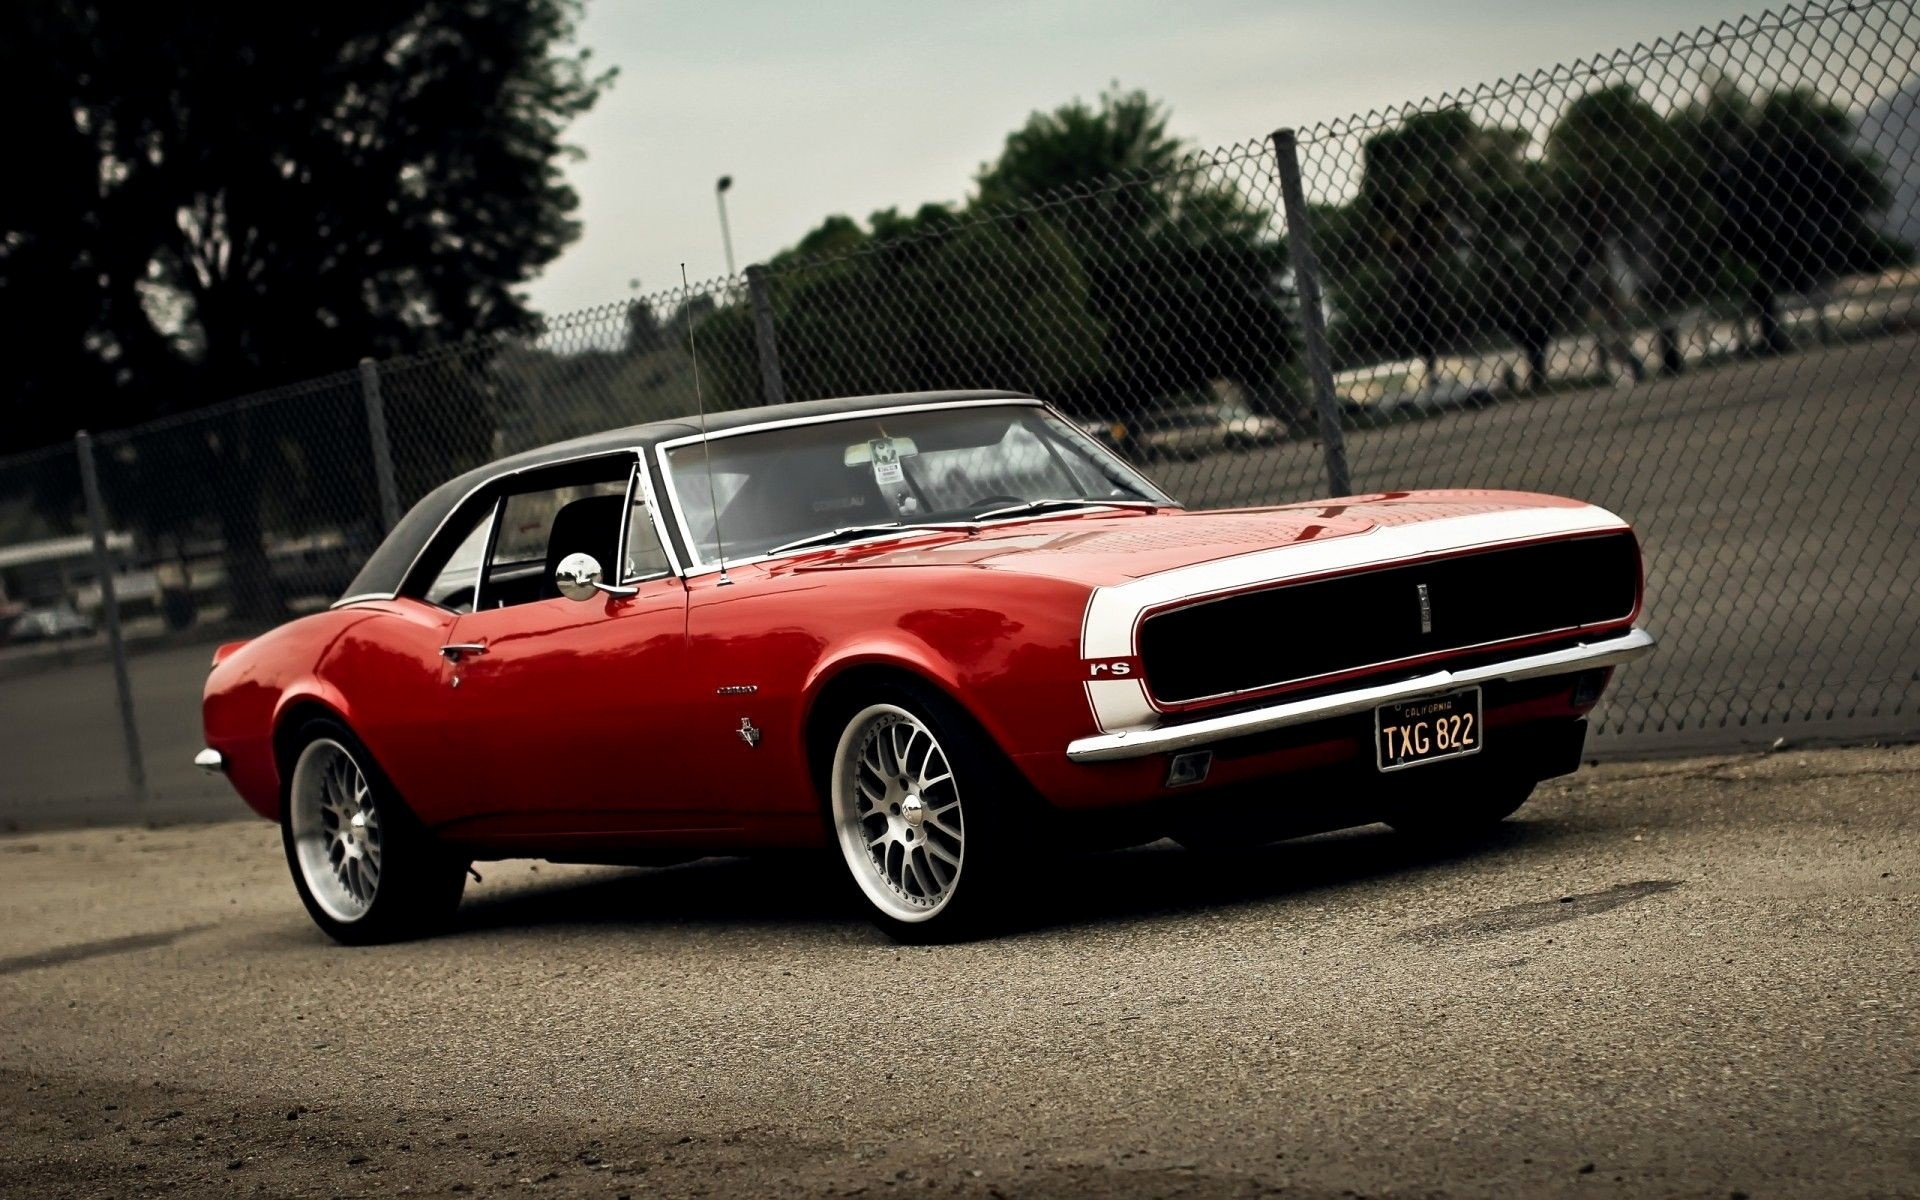 Wallpapers Of Muscle Cars 75 Images